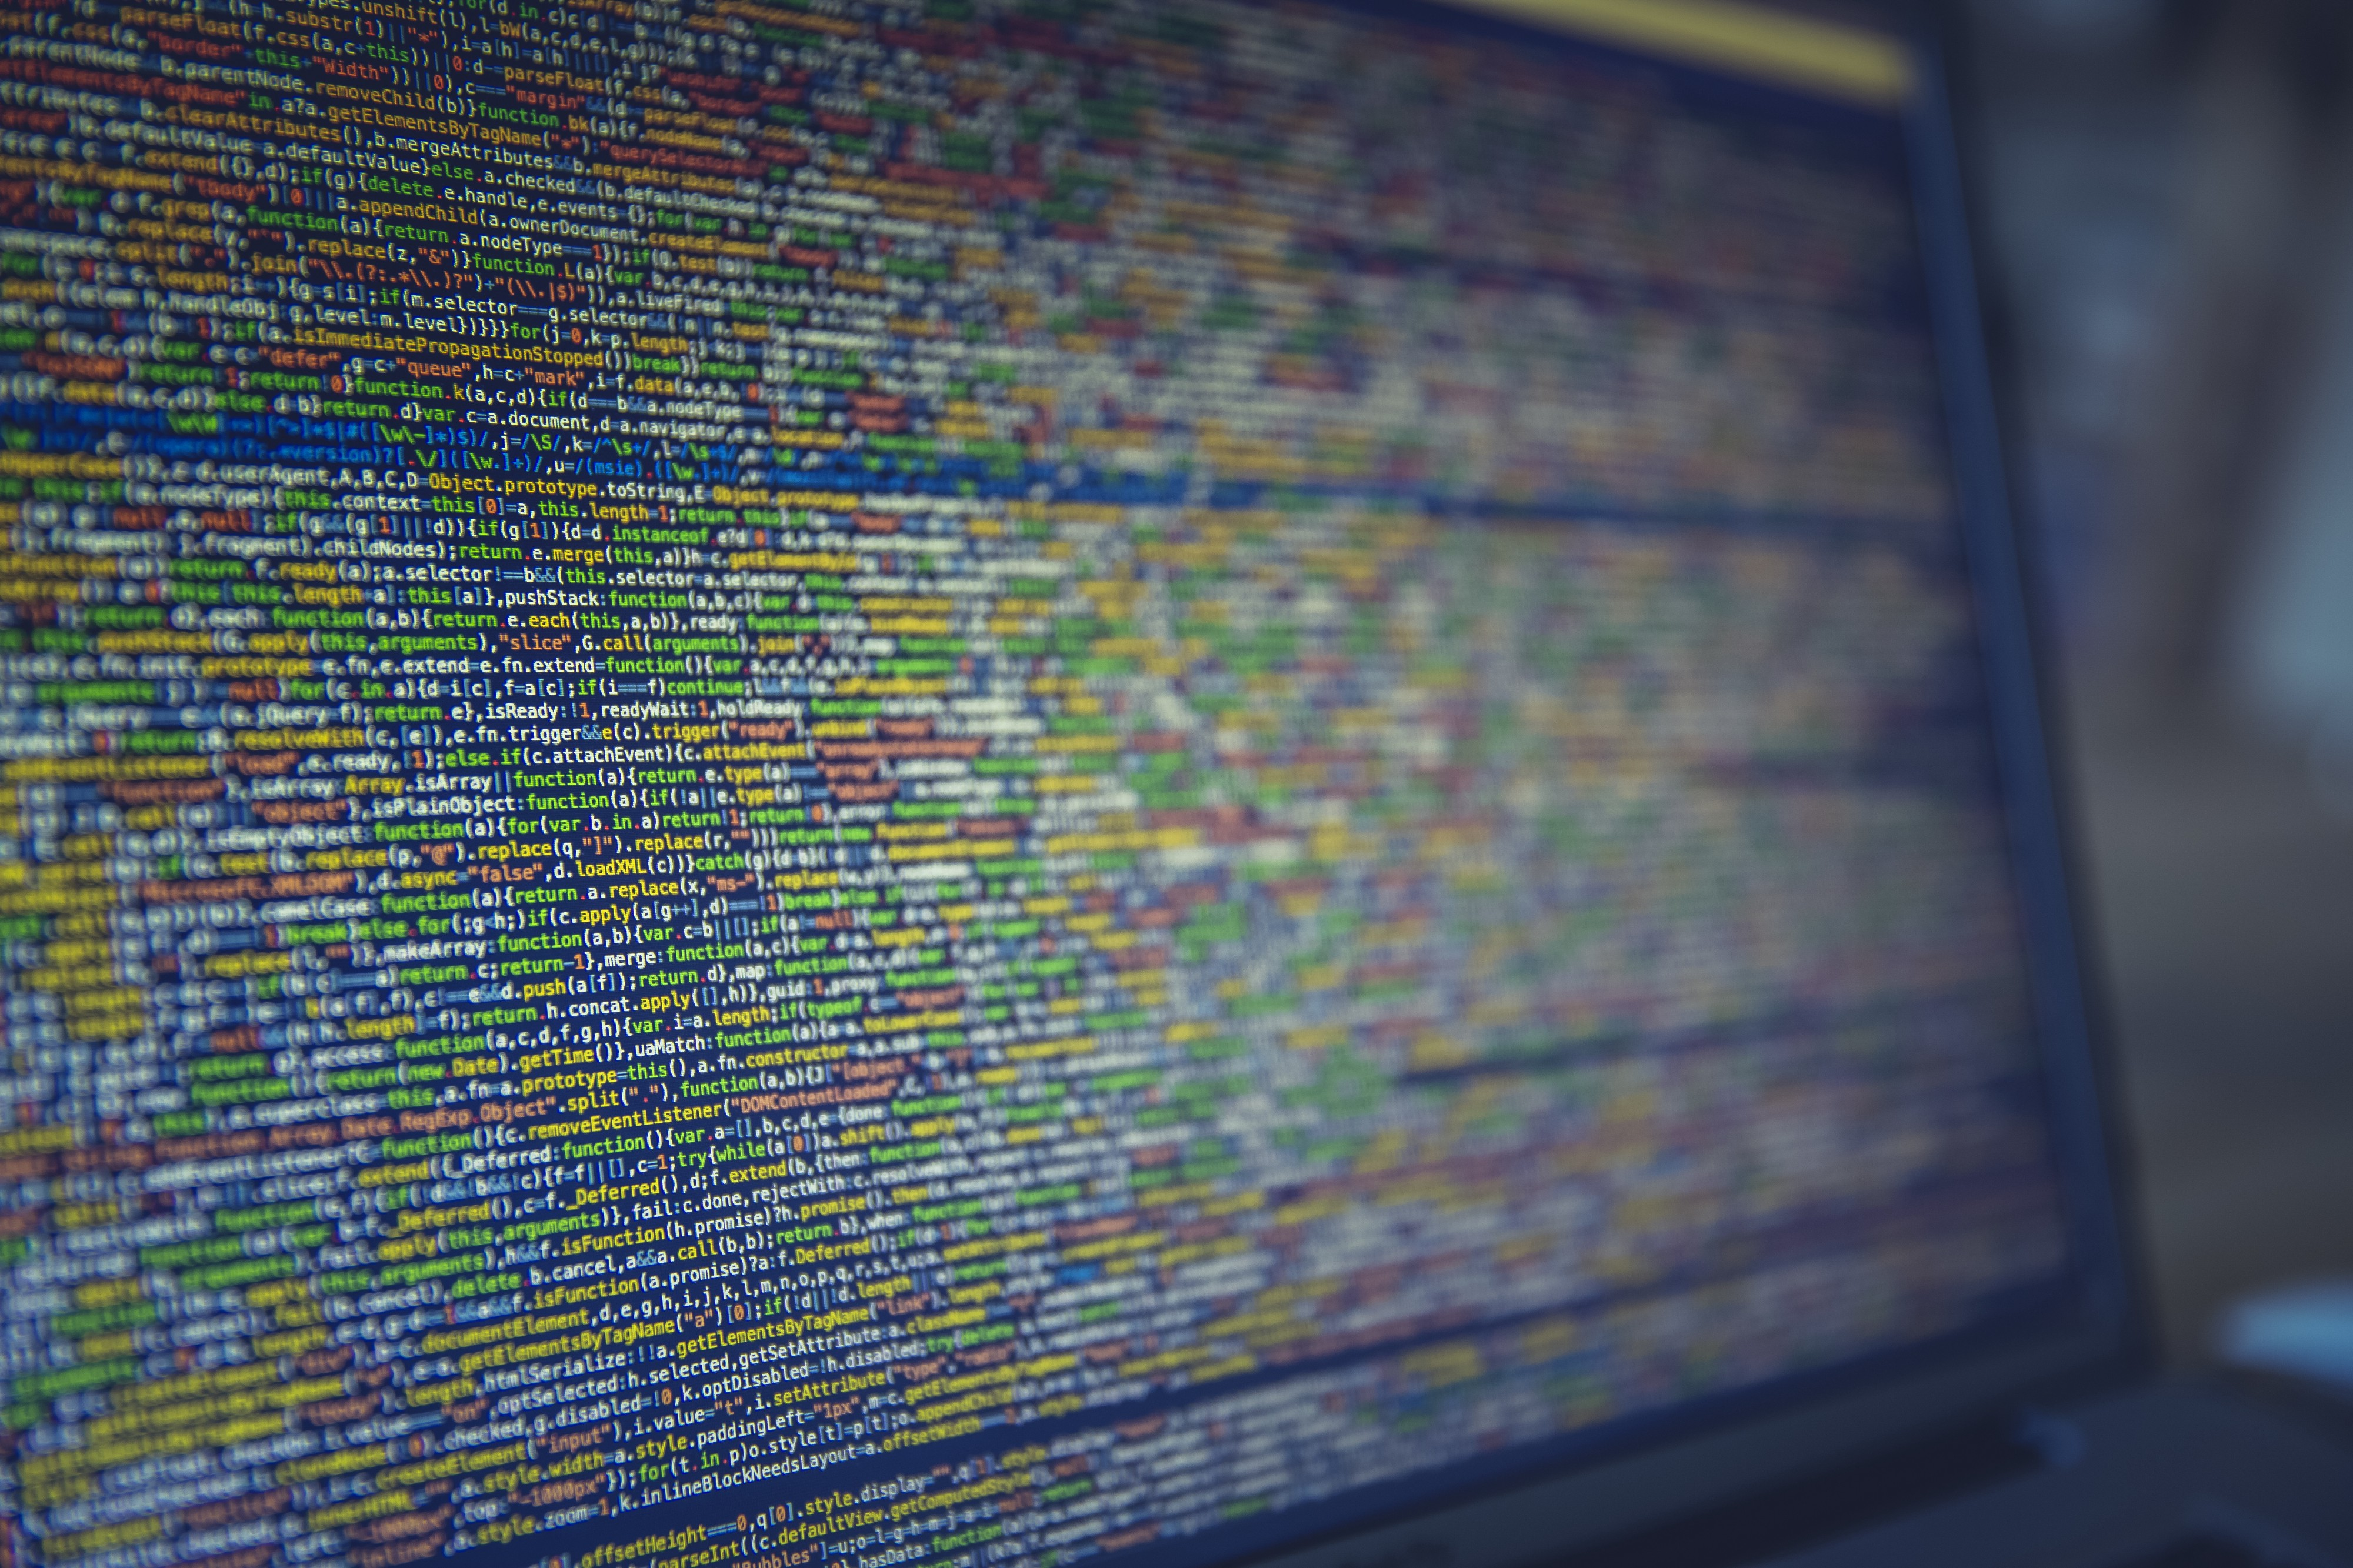 Top 5 Natural Language Processing Python Libraries for Data